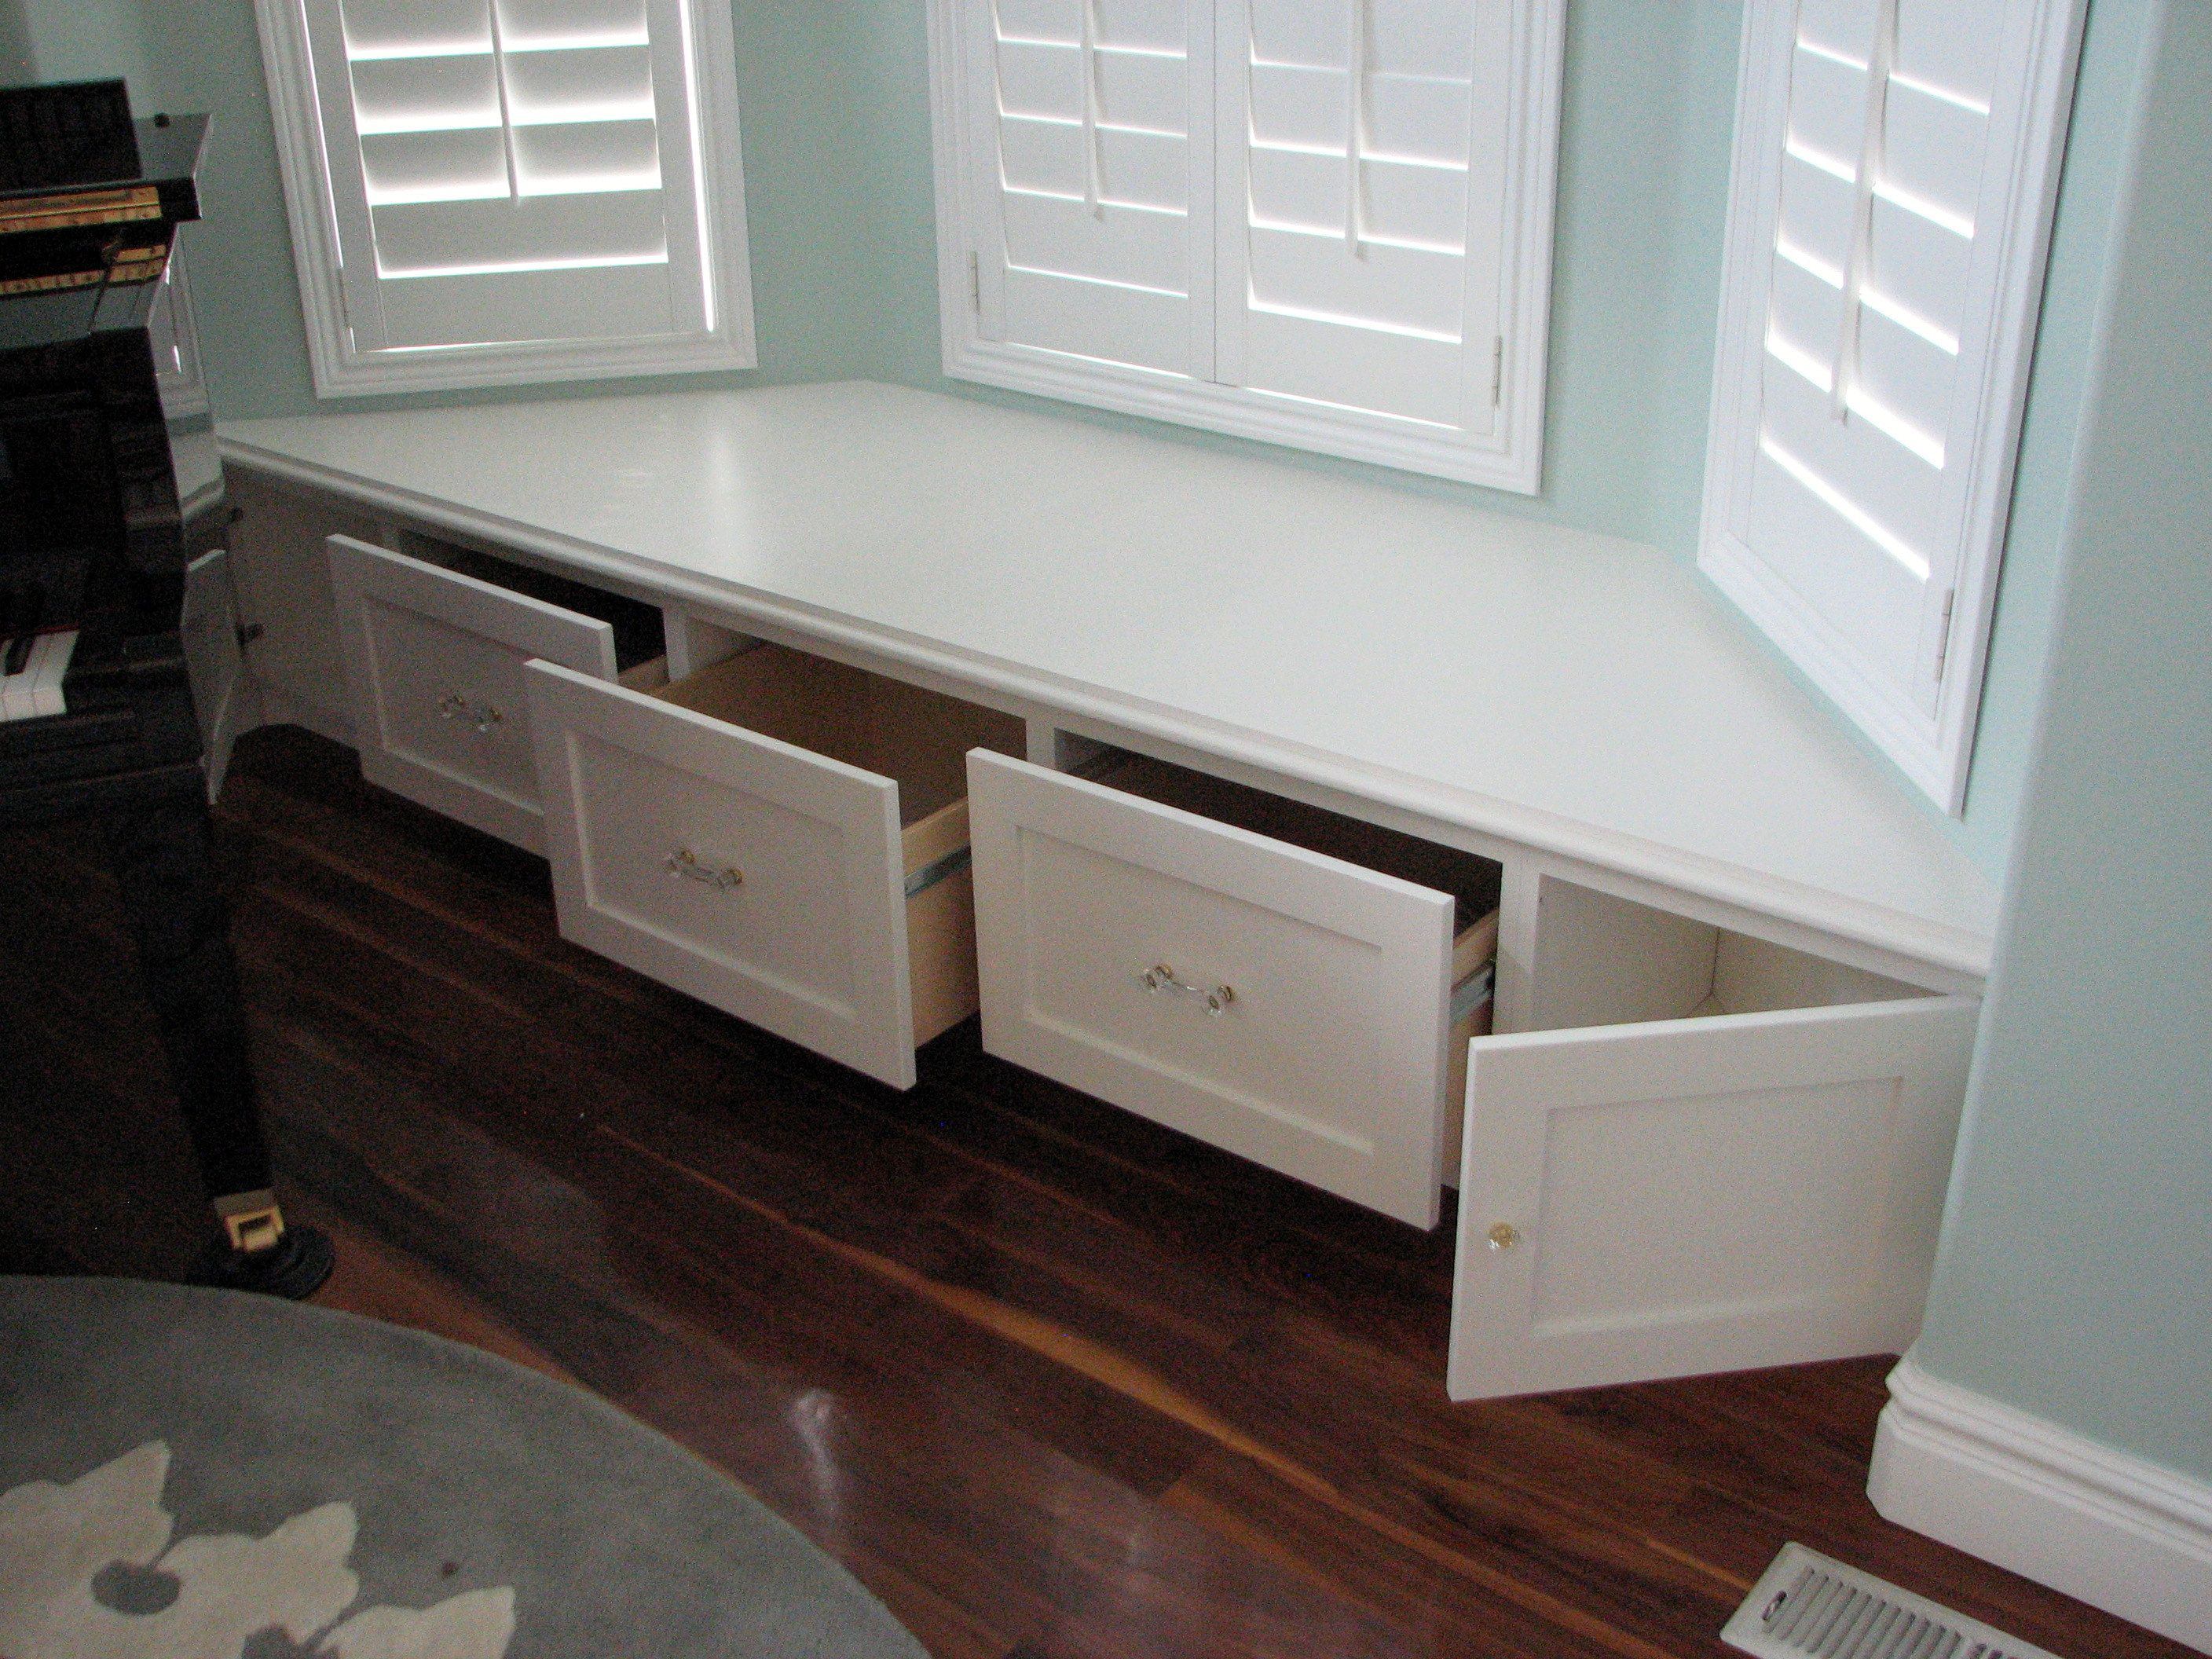 Window seat storage camps pinterest - Built In Bay Window Seat Storage Turned Into Drawers For Easier Accessibility I Would Love To Turn The Trunks Into Drawers Like This